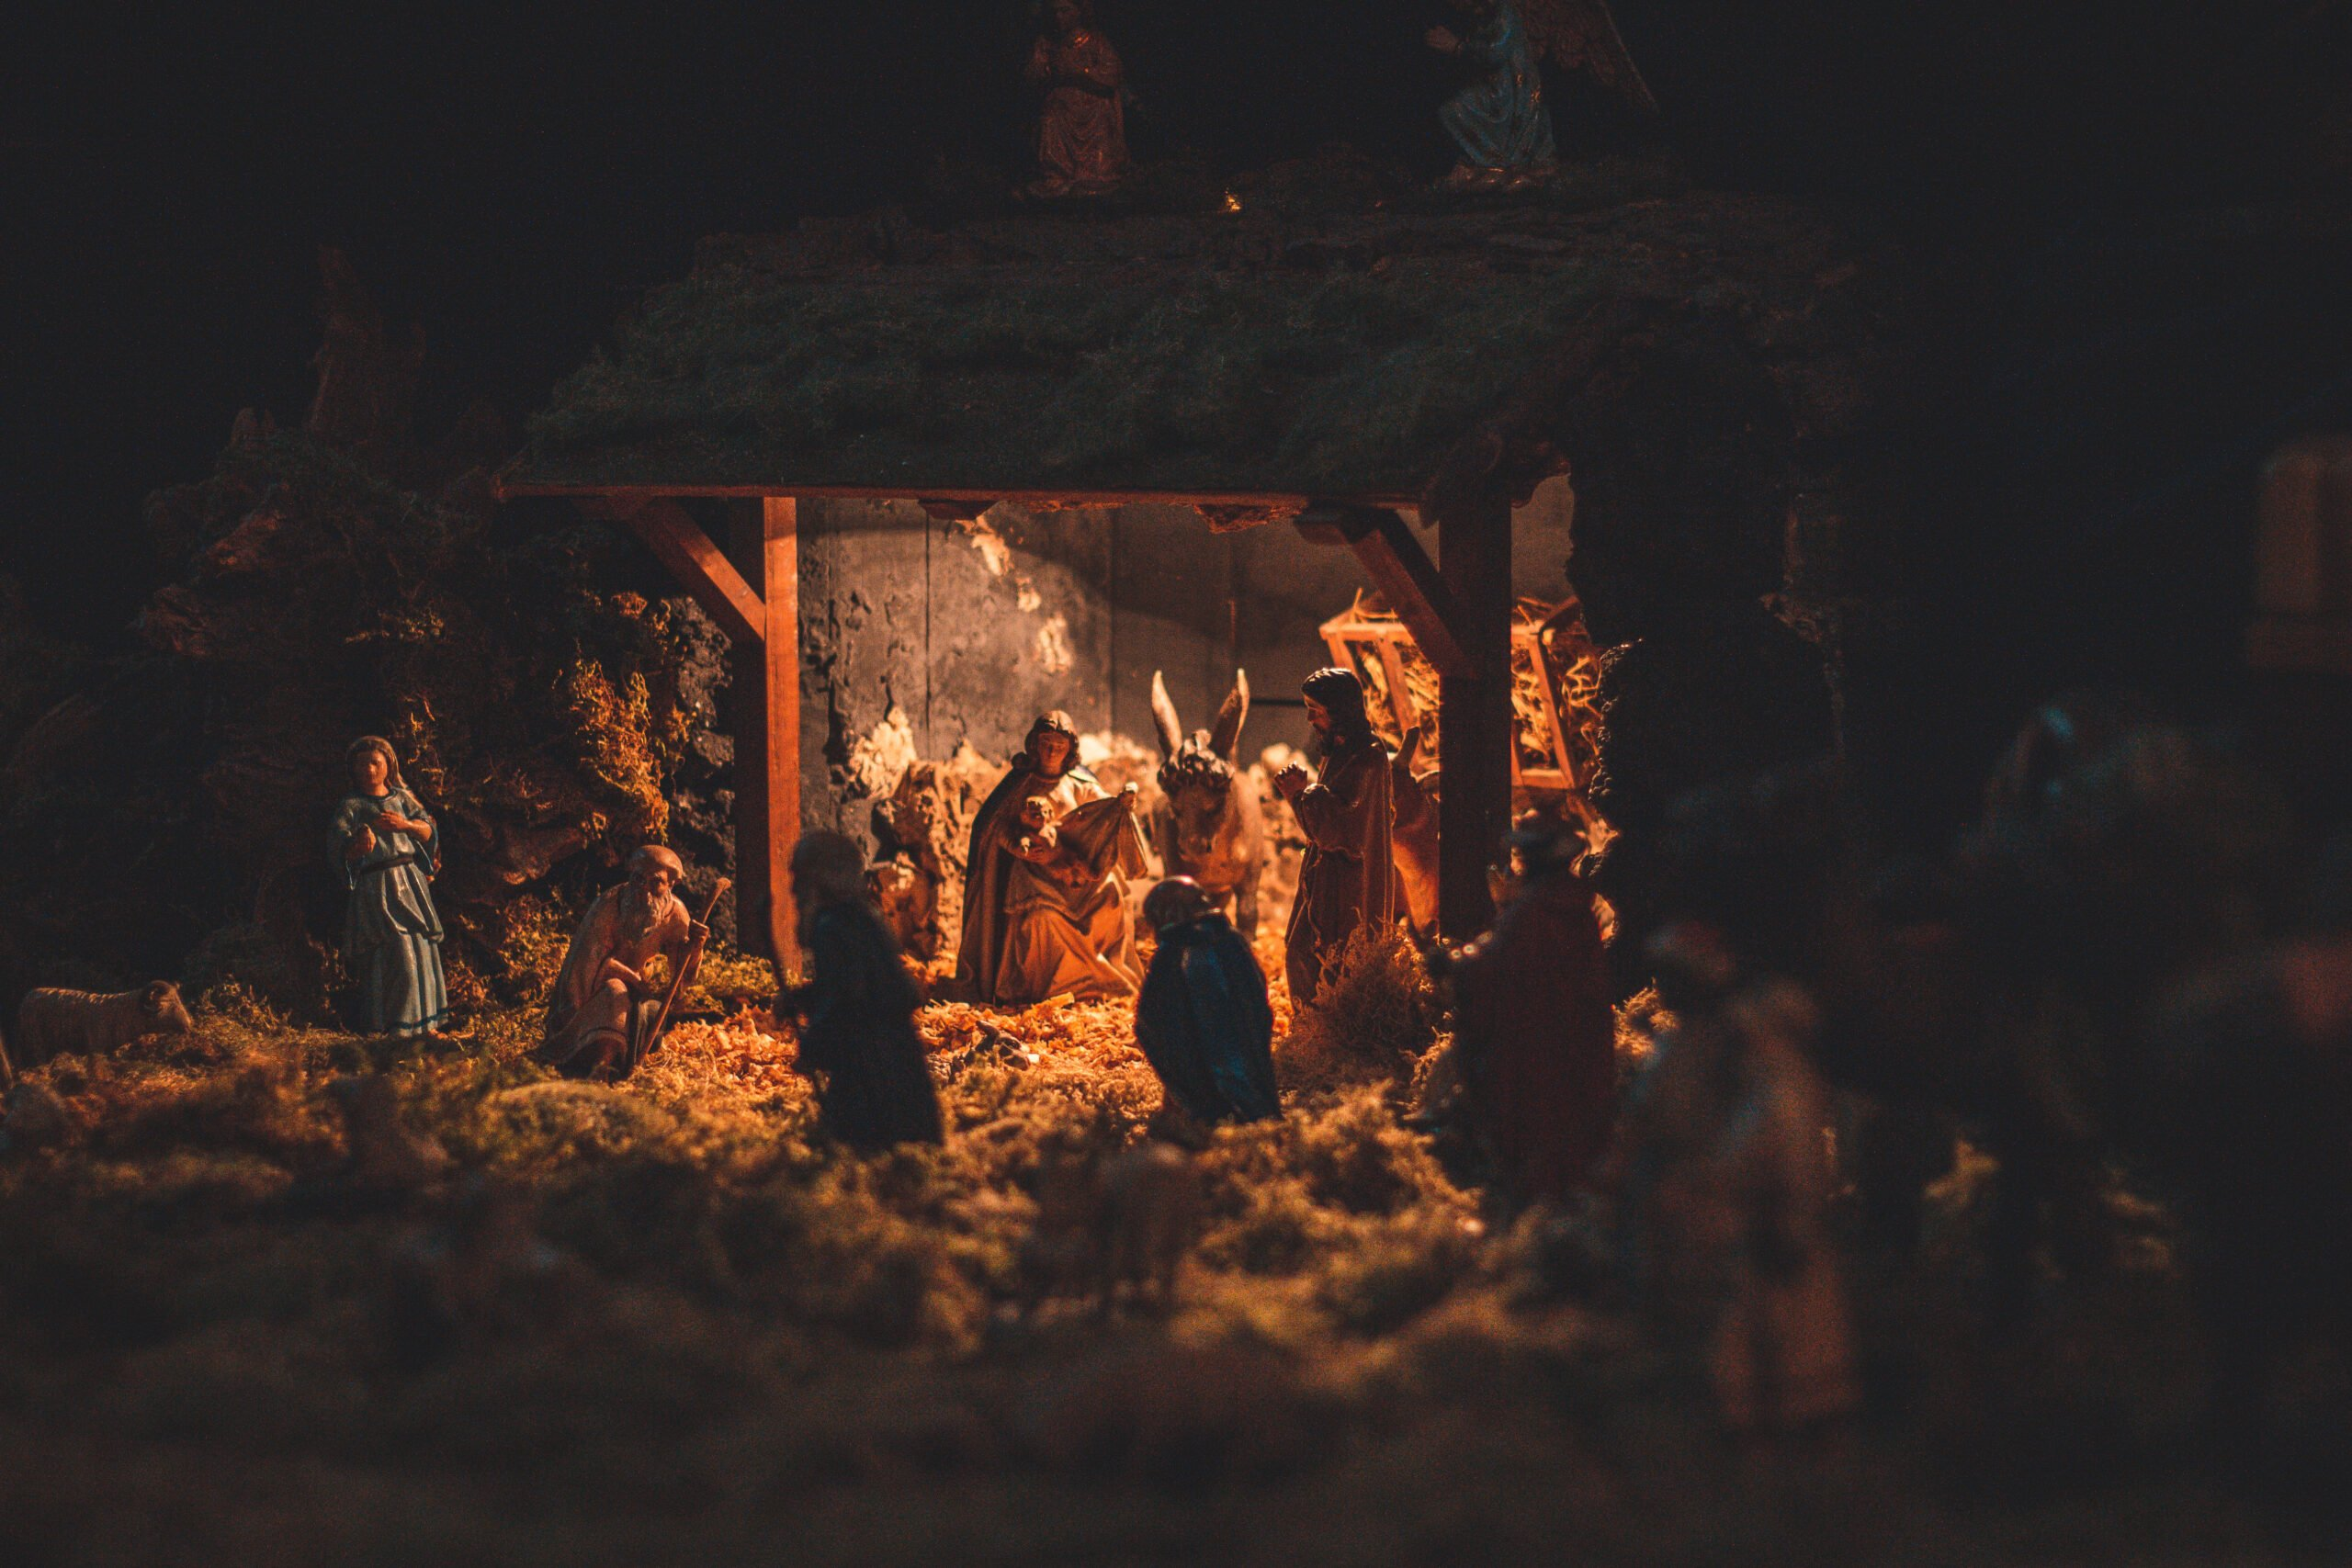 Nativity Scenes and Christmas Greetings